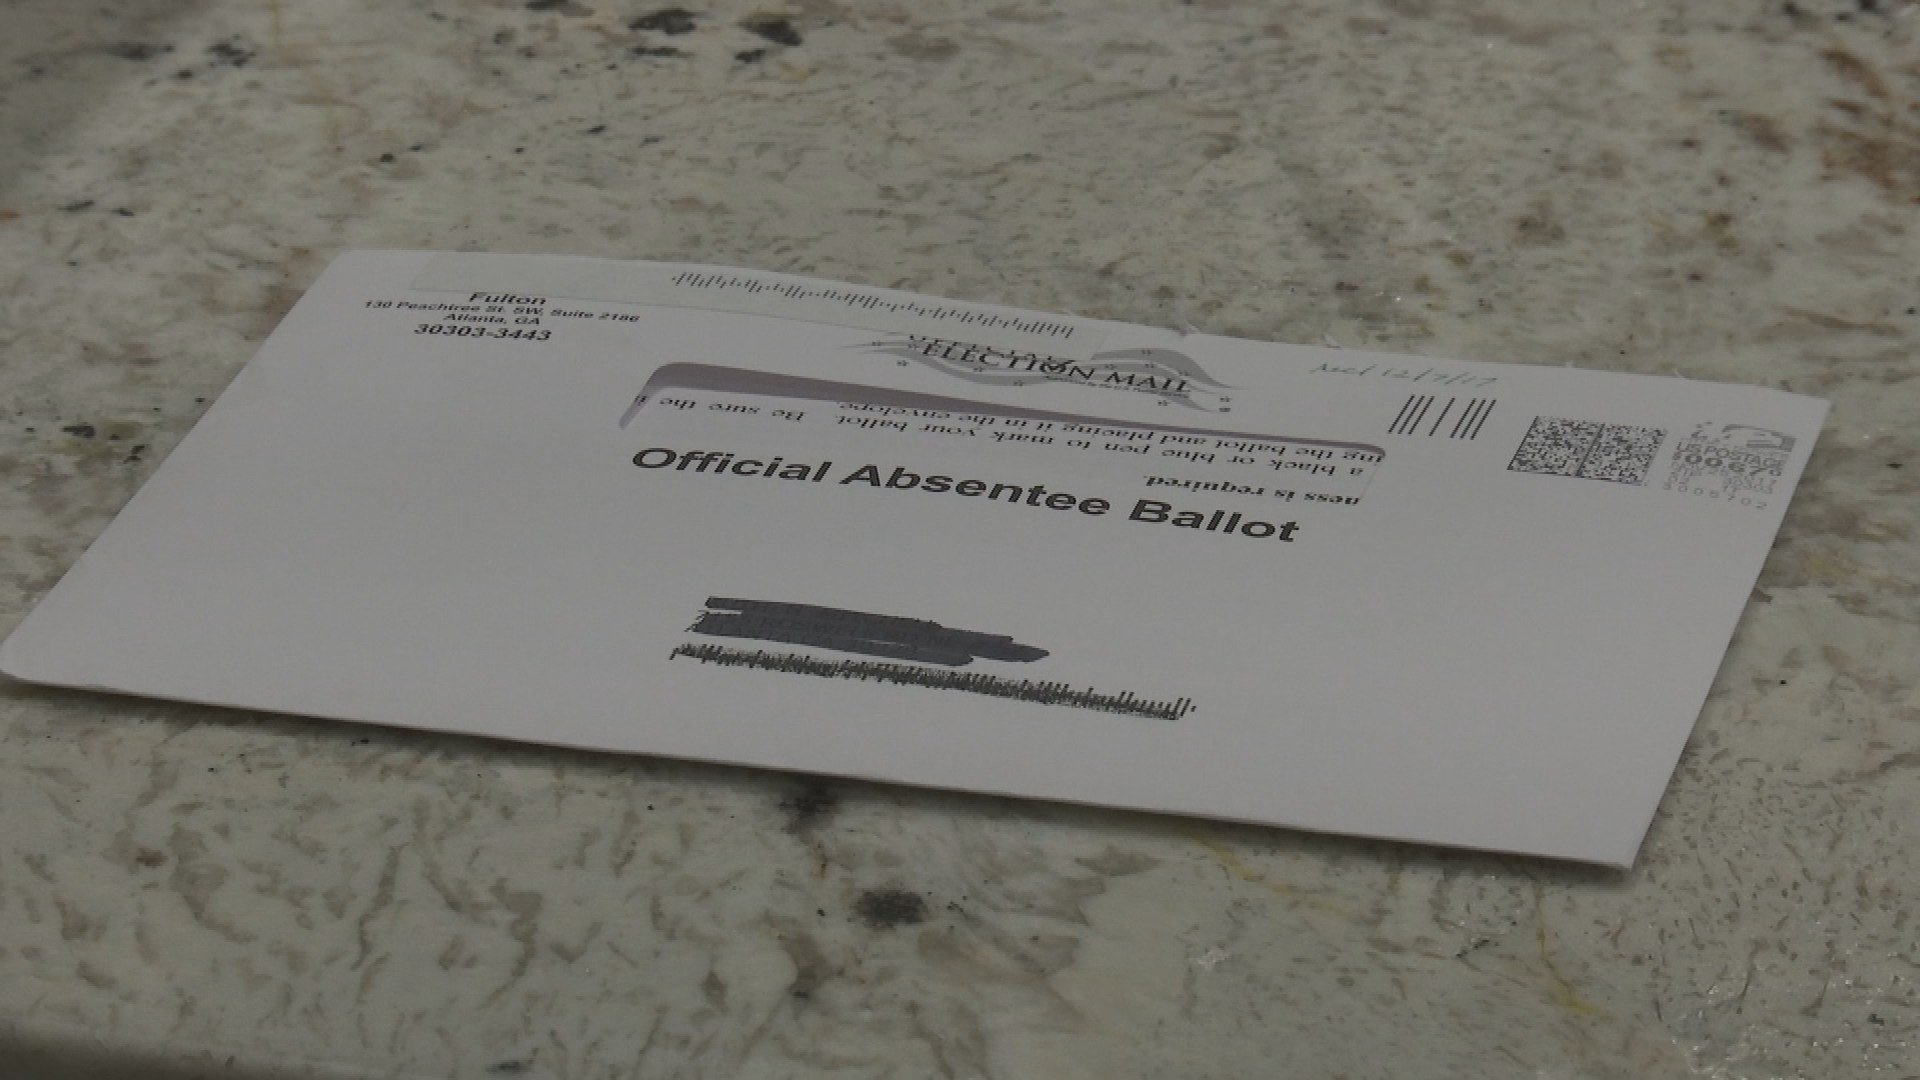 A woman received an absentee ballot to fill out two days after the election was over (WGCL)